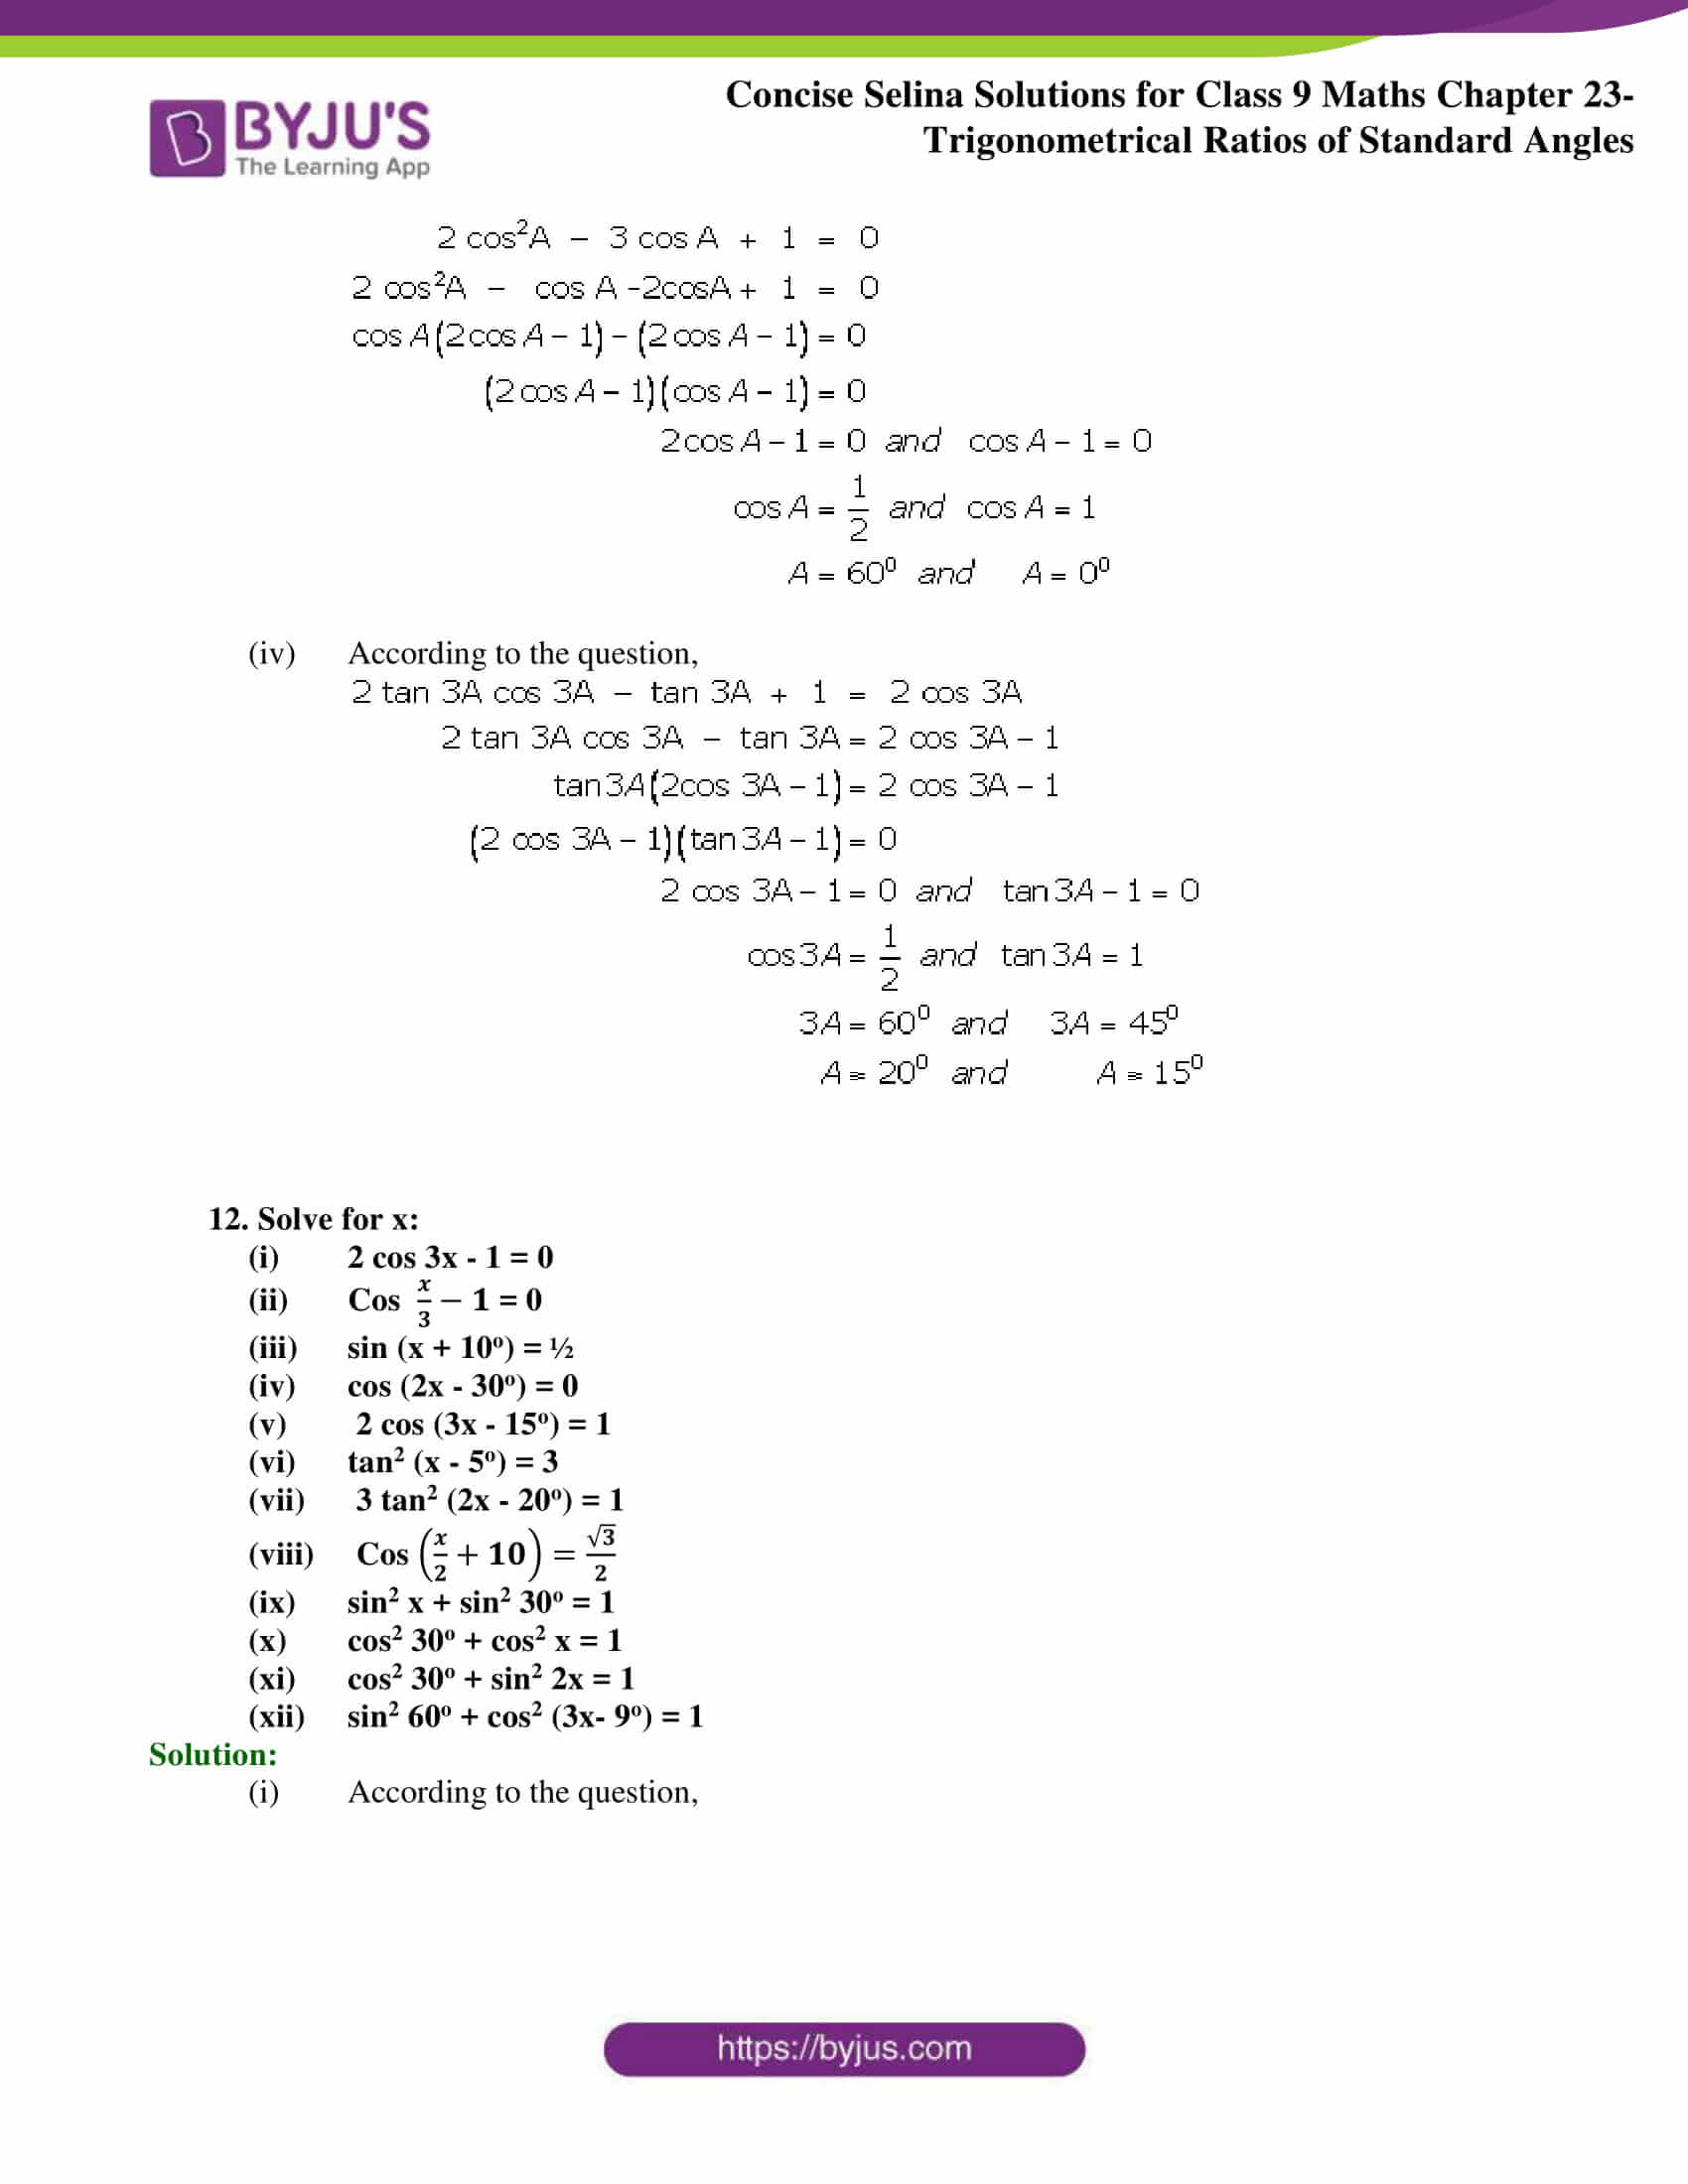 Concise Selina Solutions Class 9 Maths Chapter 23 part 30